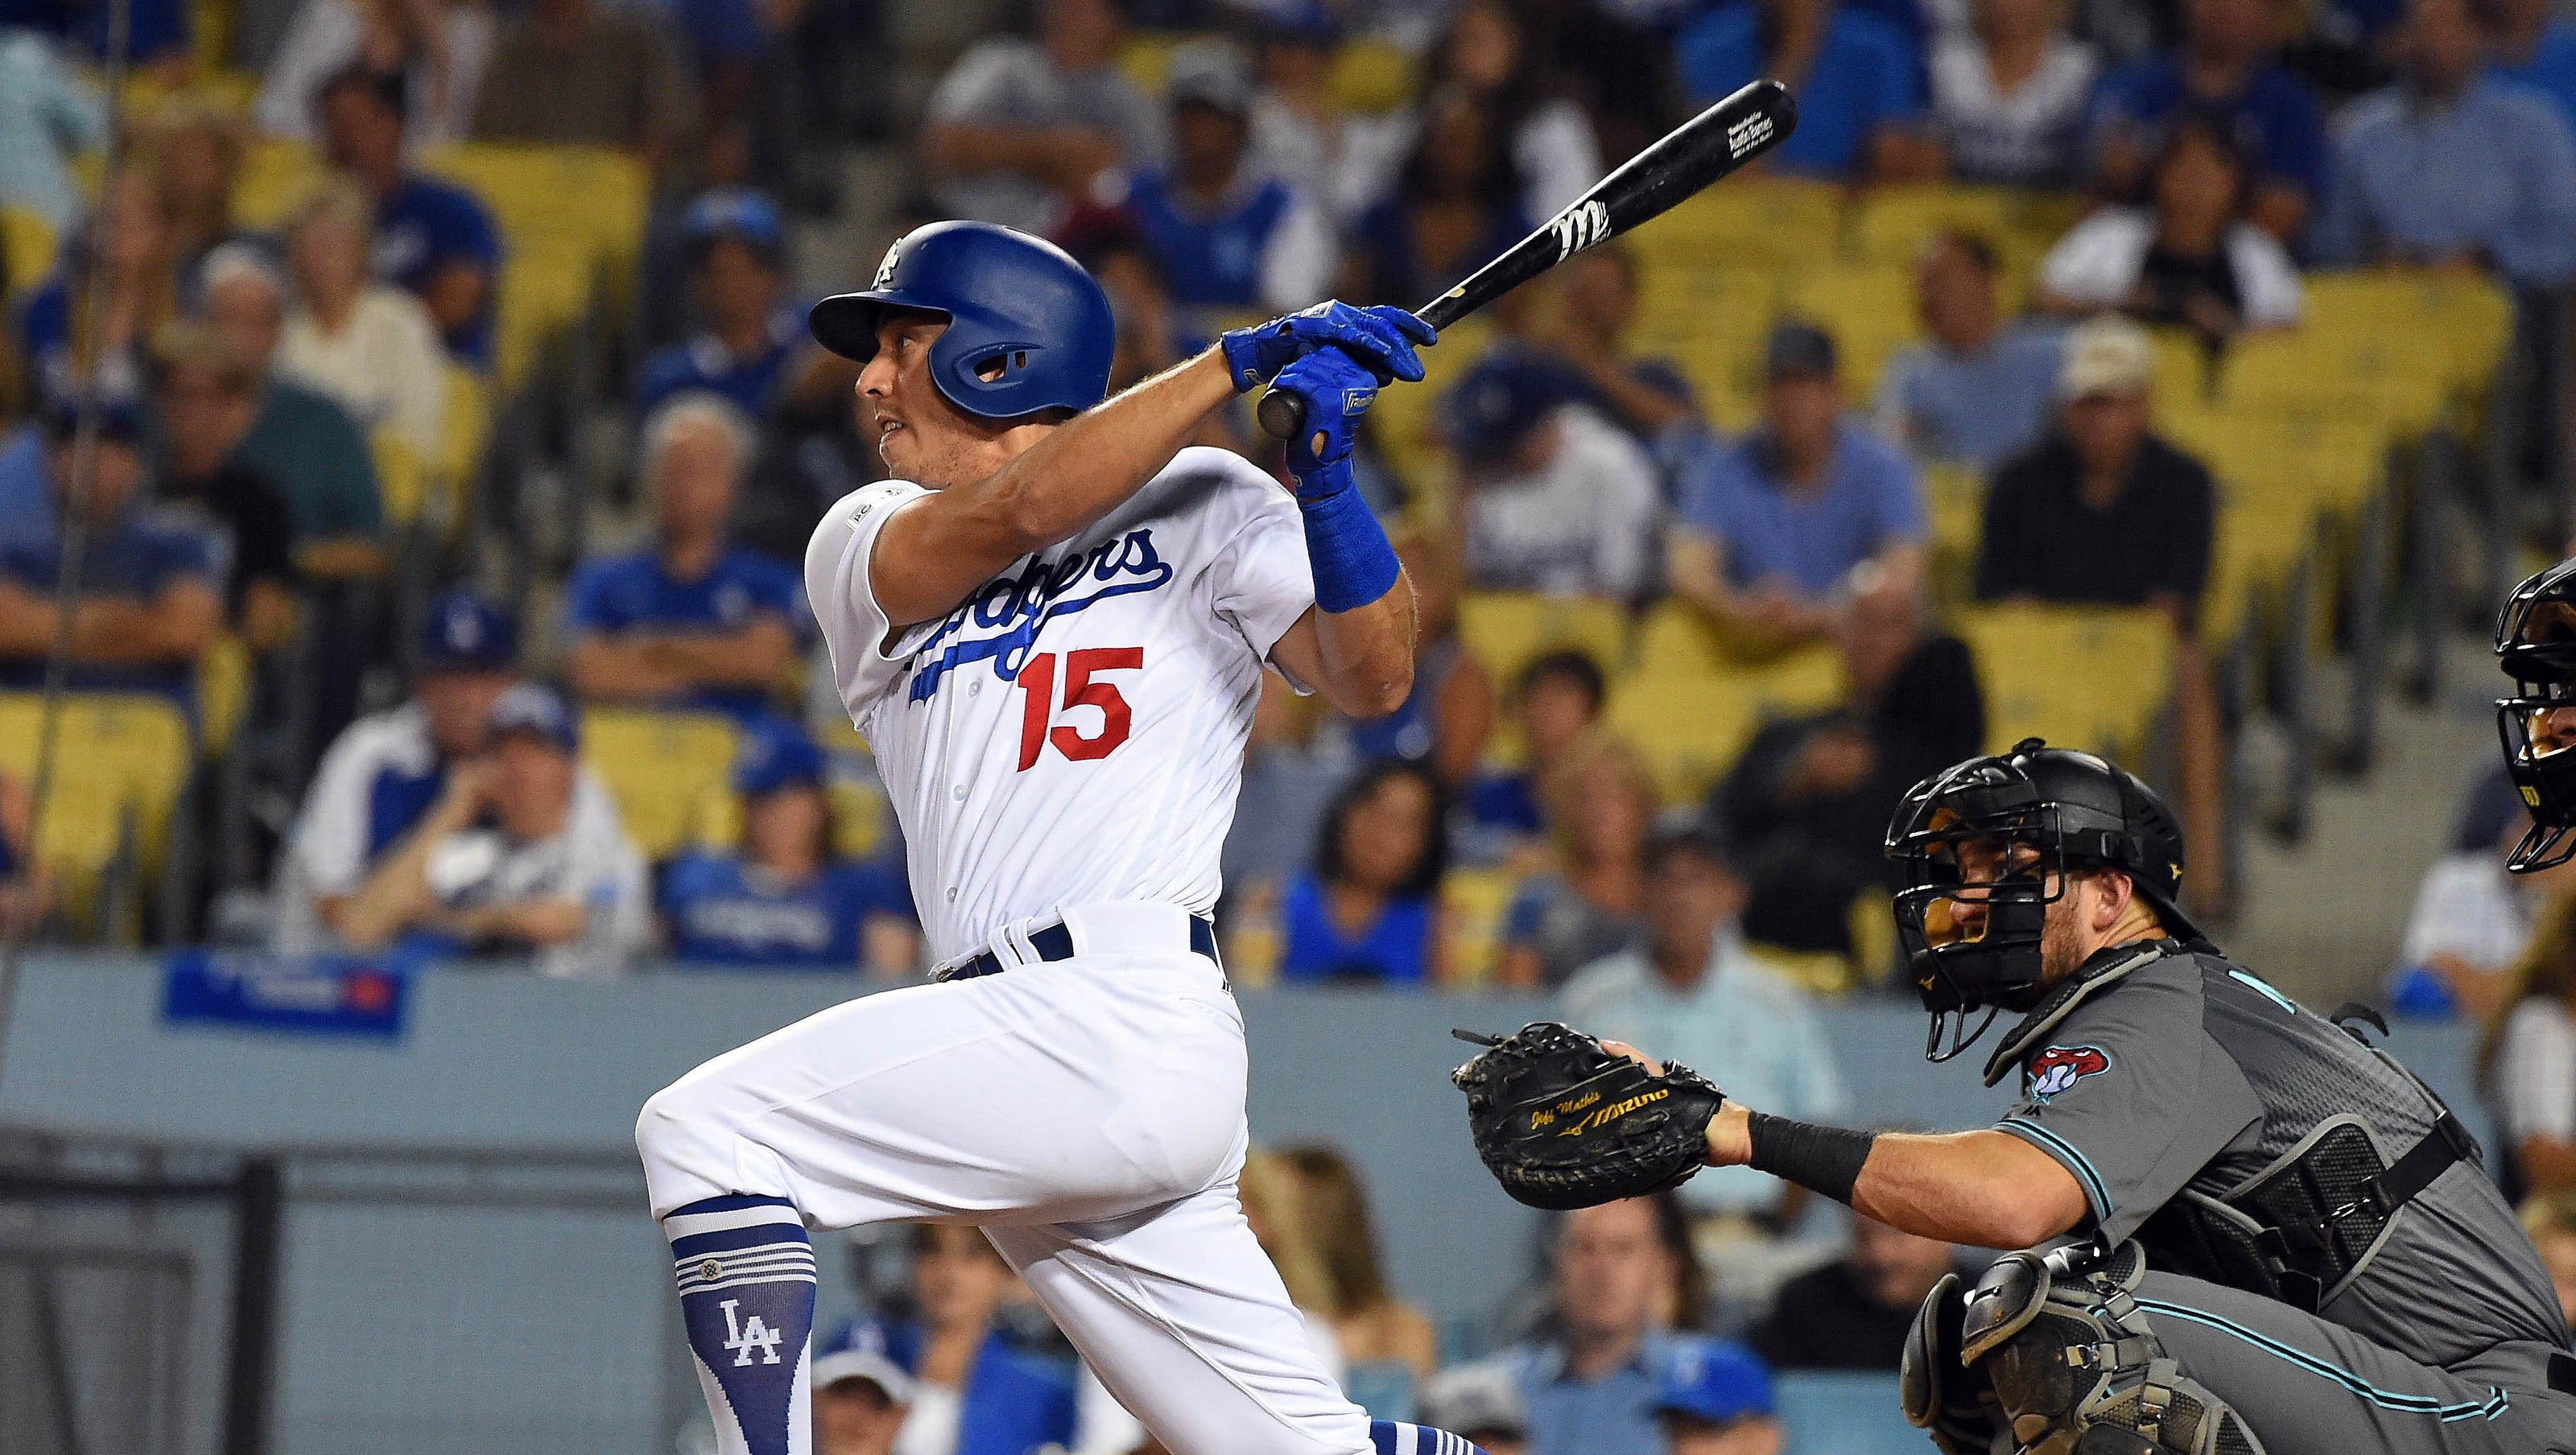 NLDS: Dodgers' 6-7-8 hitters lead star-studded postseason roster